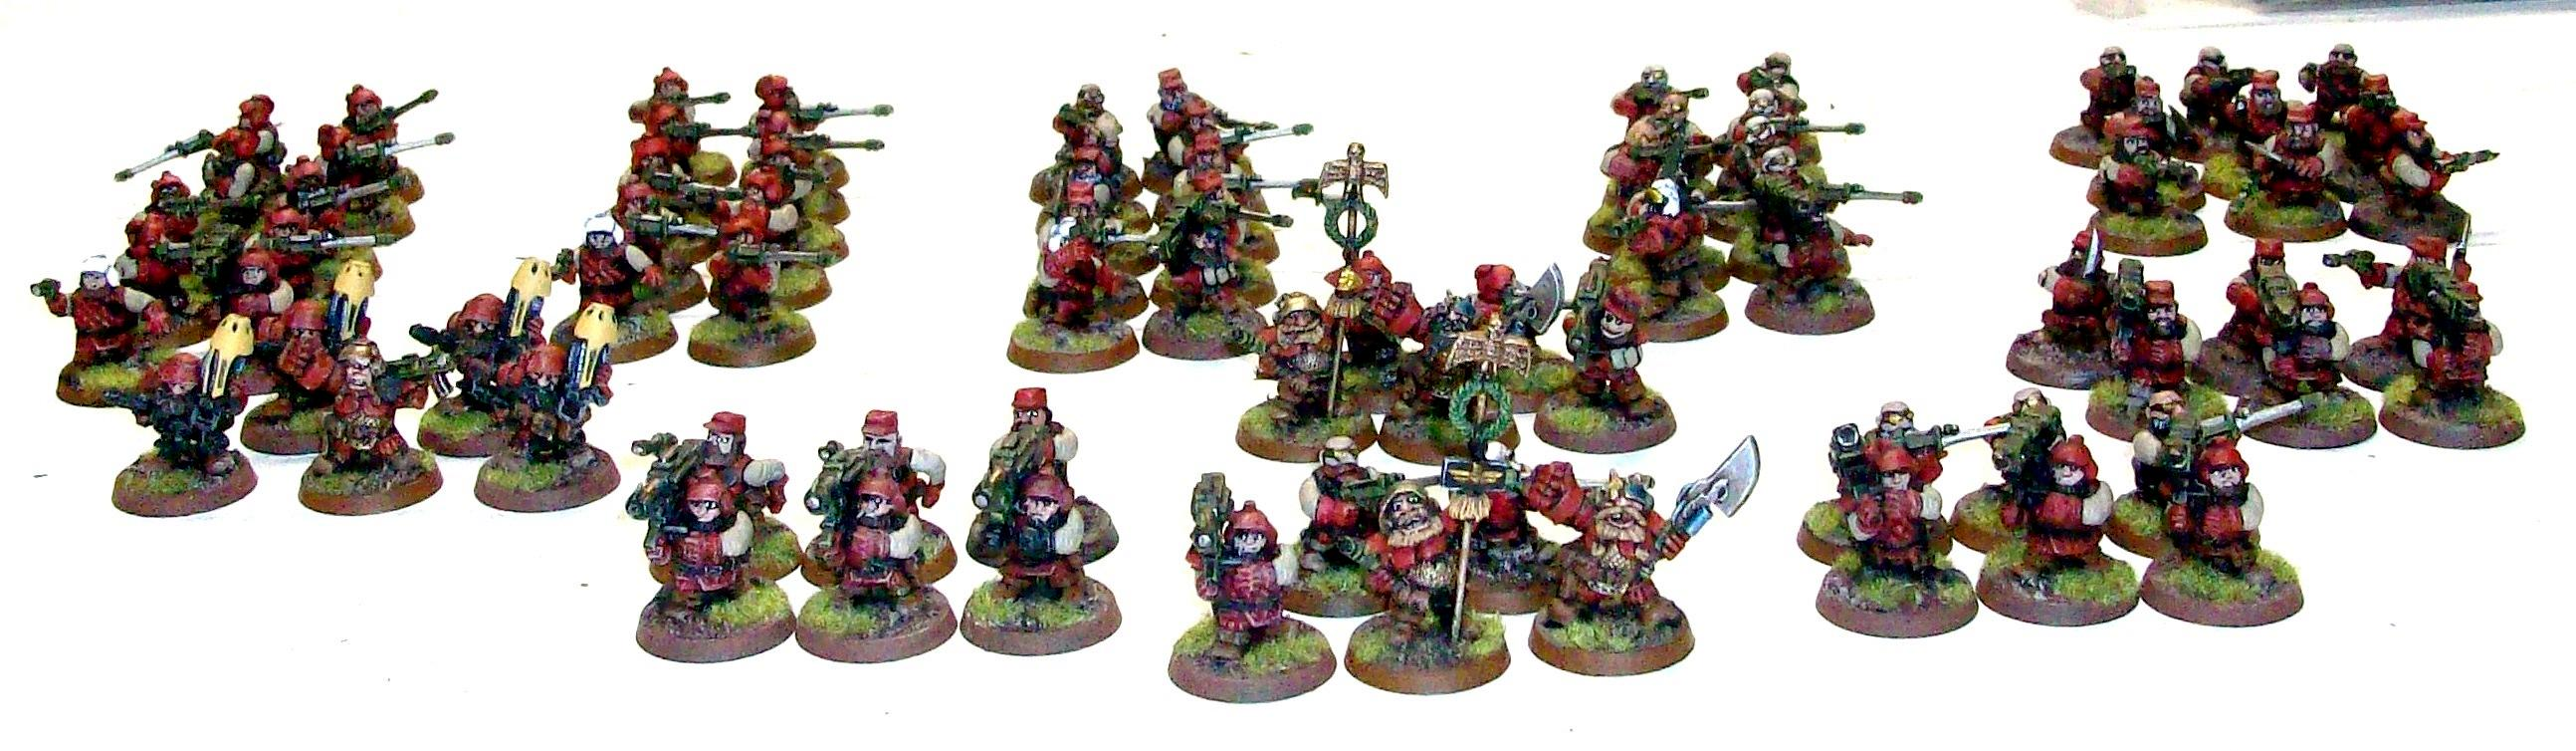 Games Workshop, Squats, Warhammer 40,000